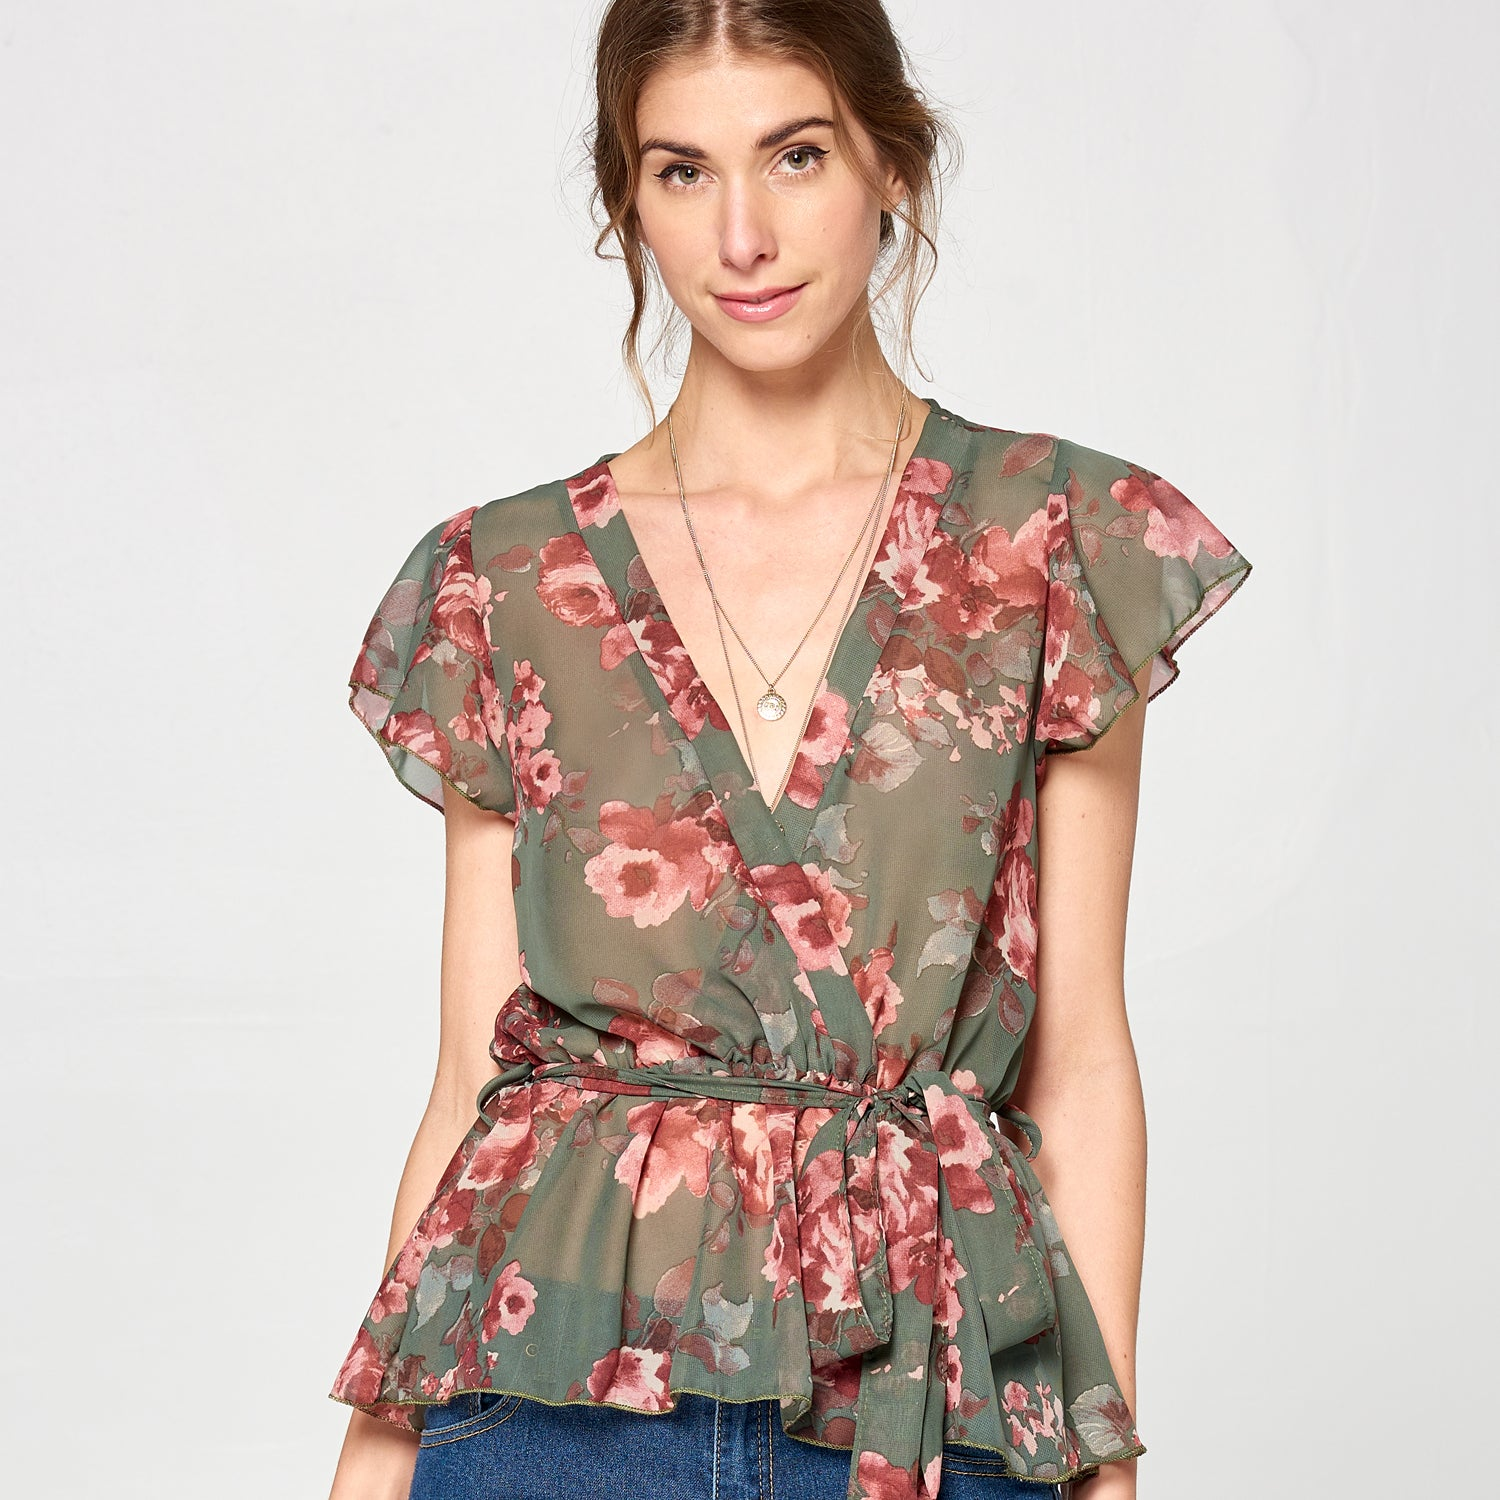 Floral Chiffon Surplice Top - Love, Kuza